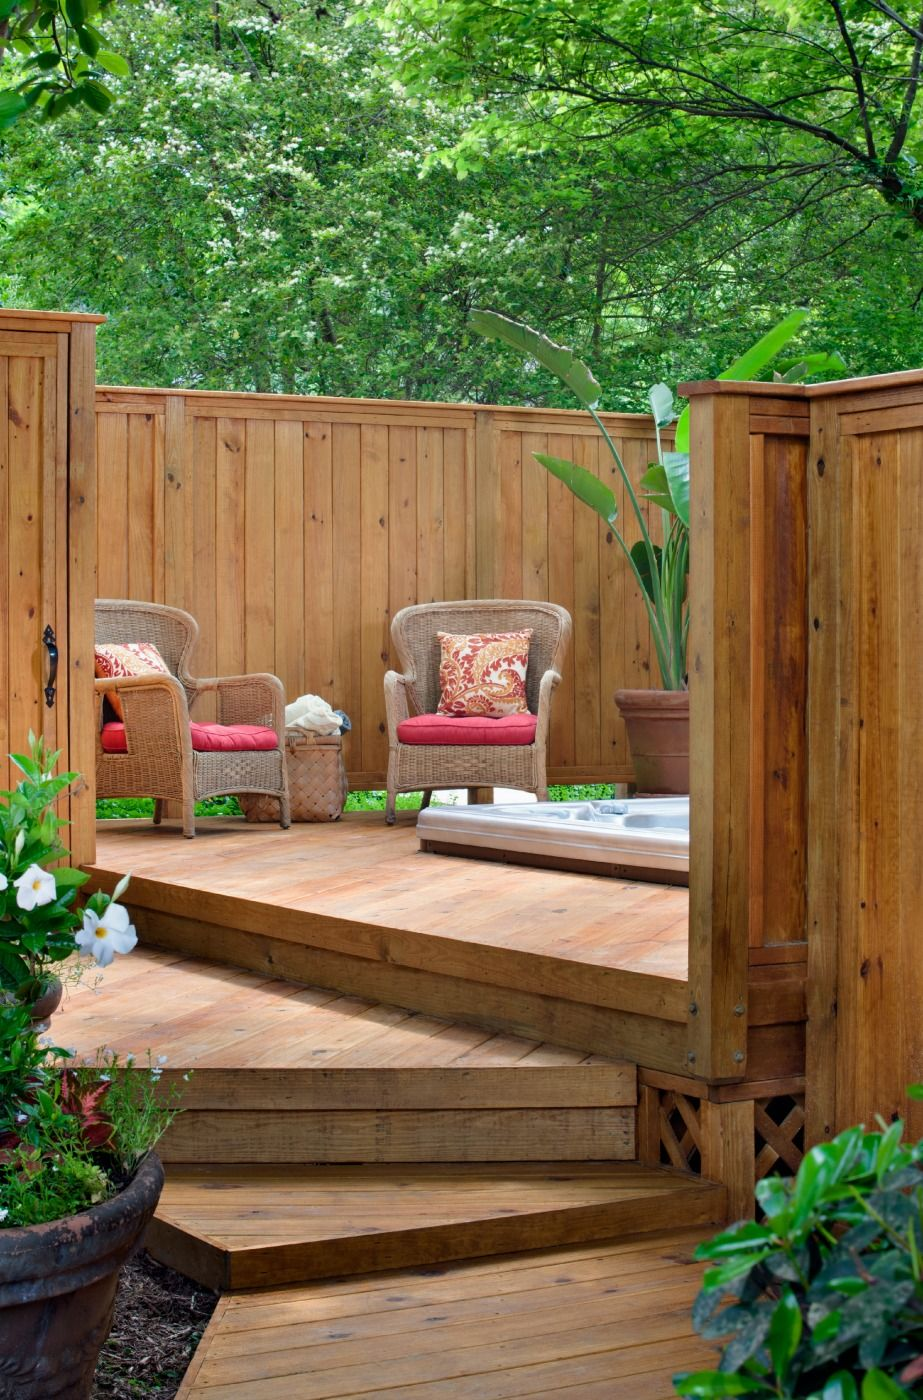 Wooden Deck Design With Privacy Fence For Hot Tub Hot Tub